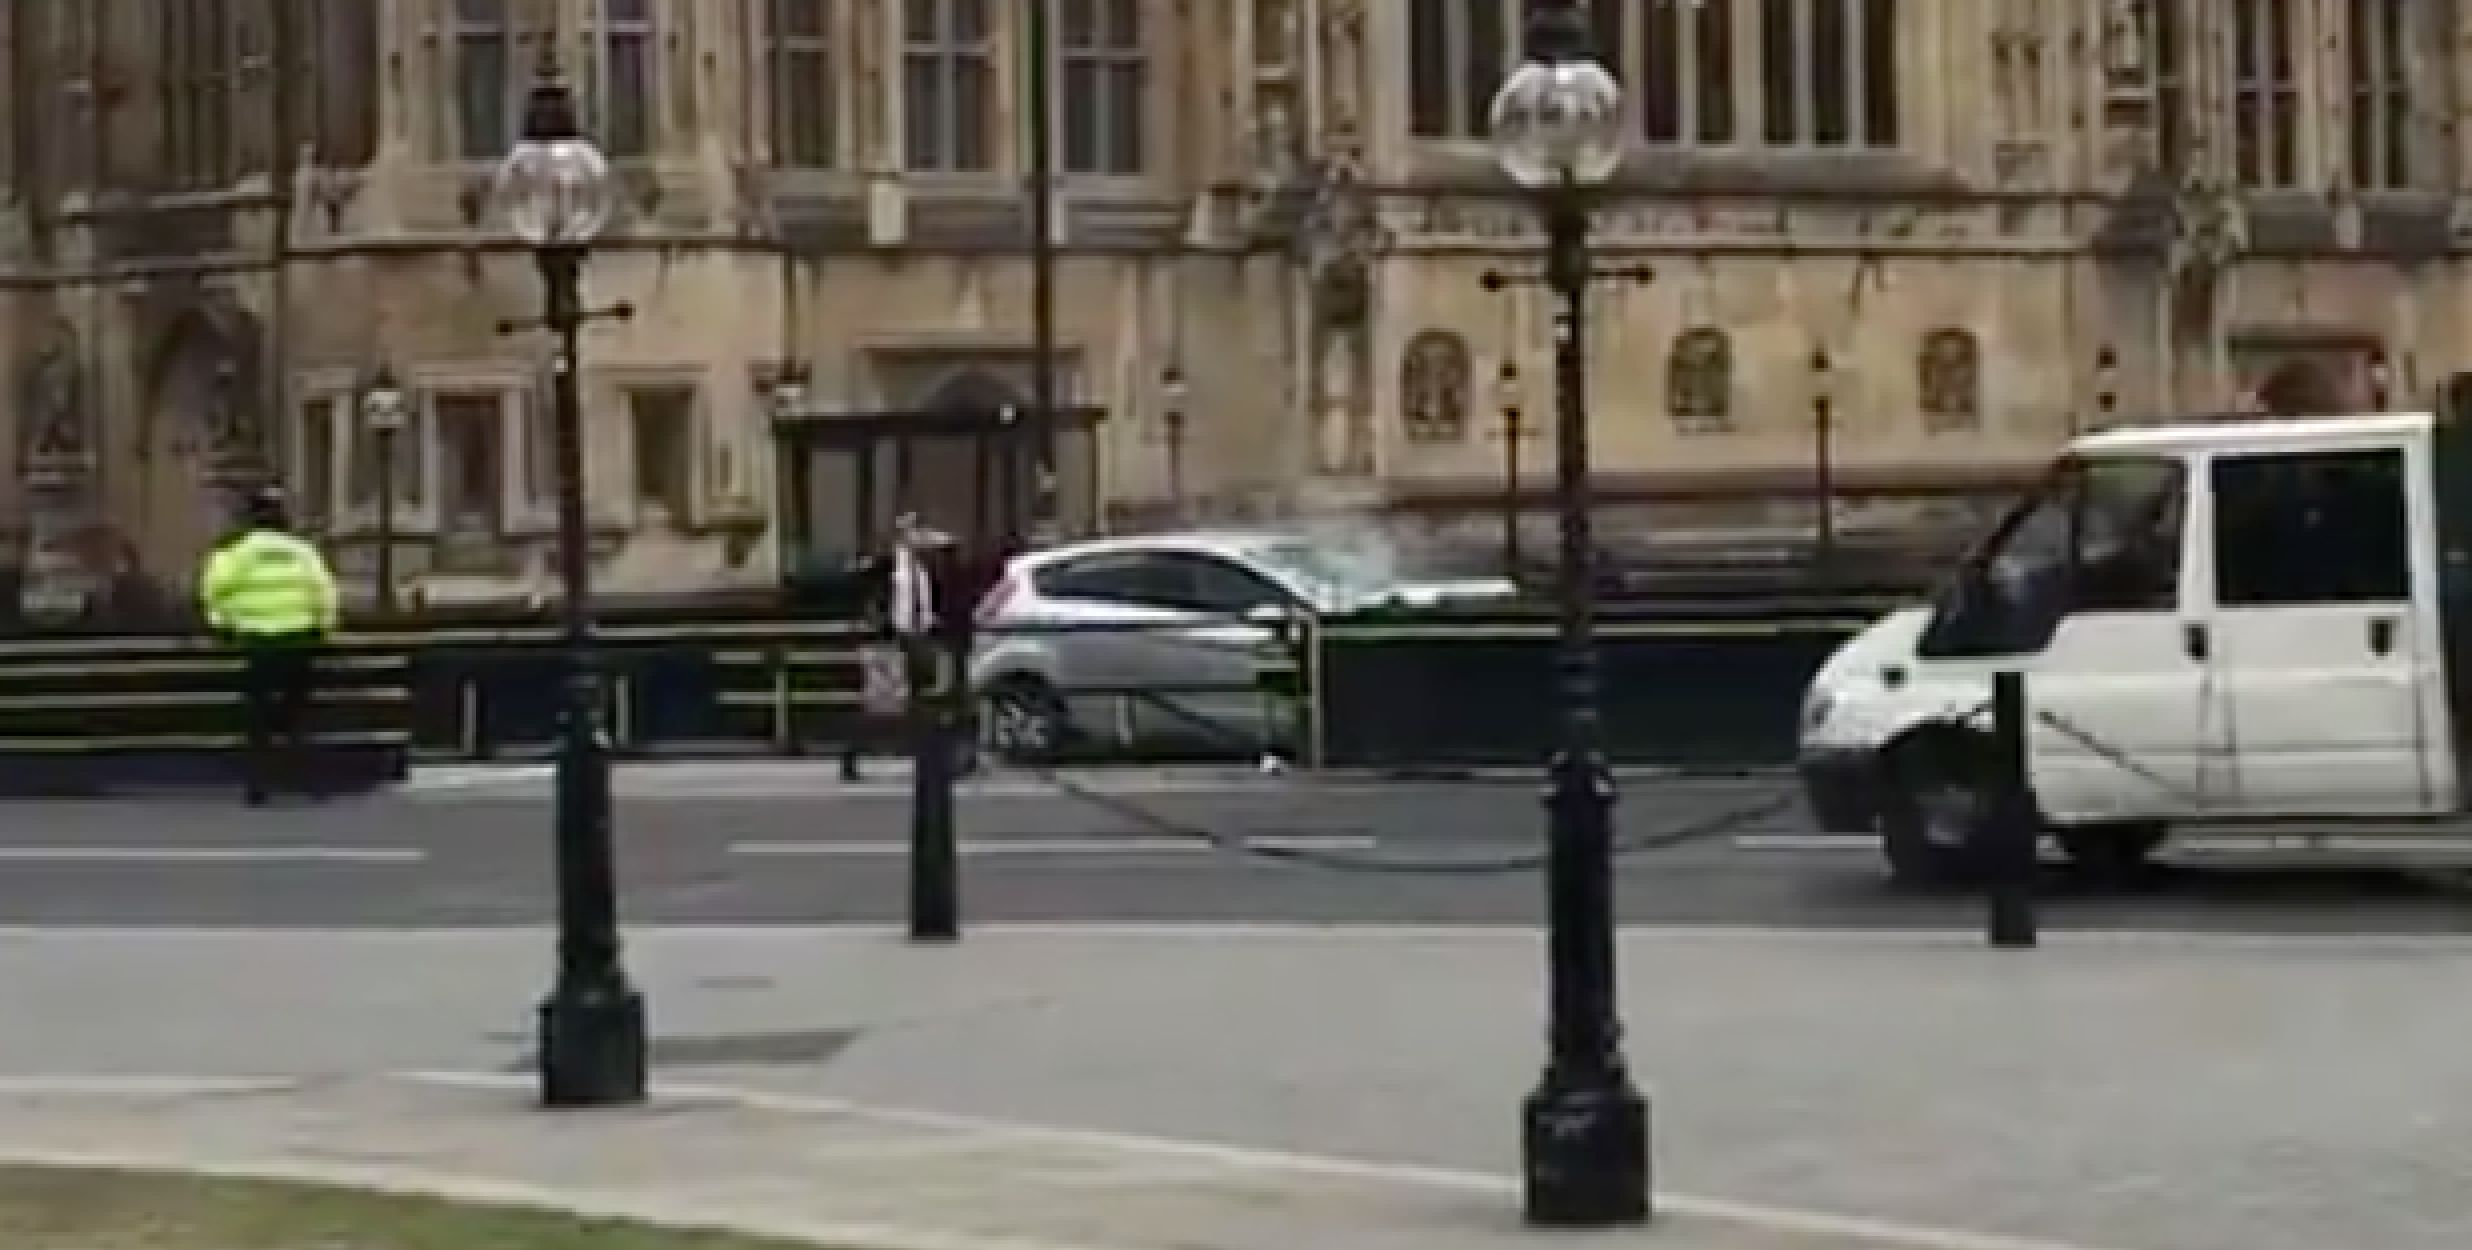 Parliament Square crash: pedestrians injured as auto hits barriers